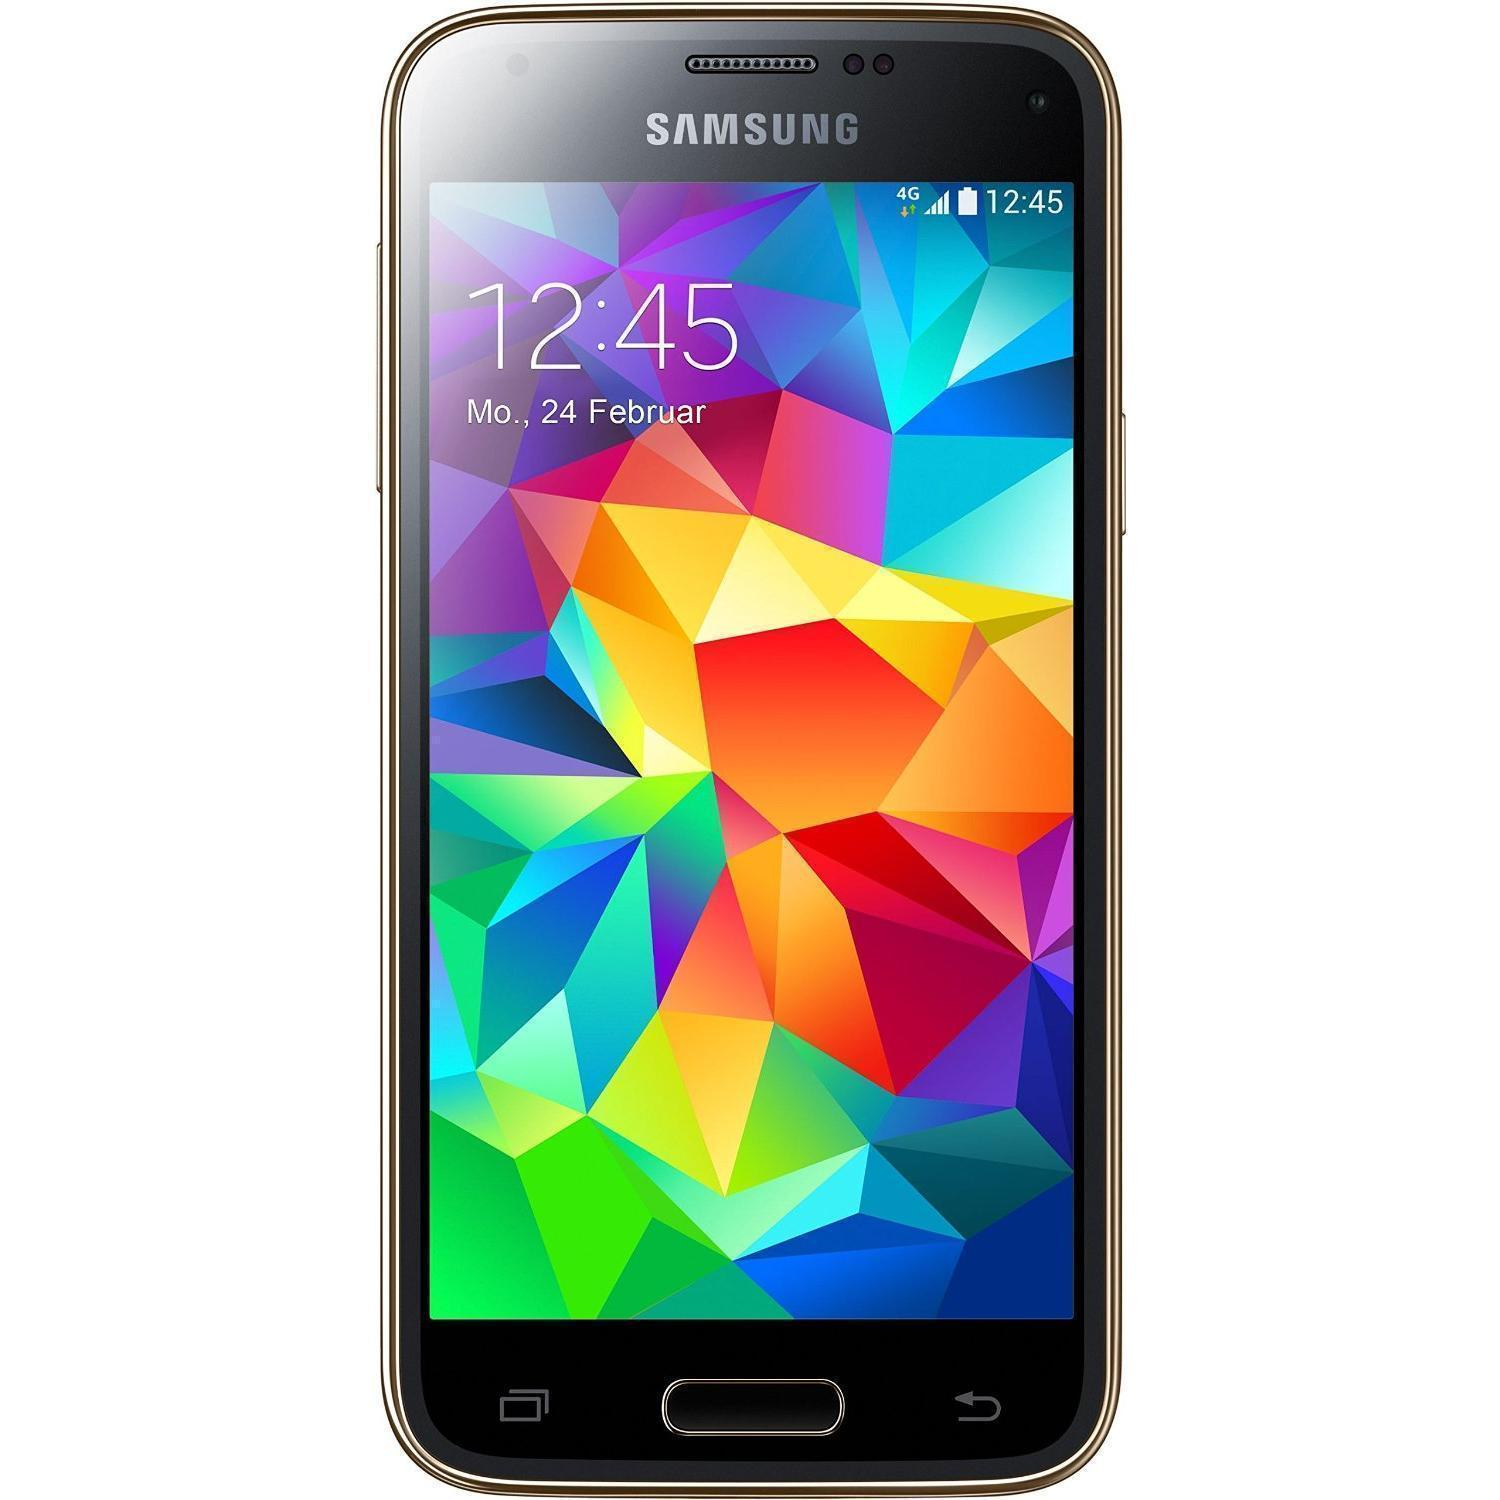 Samsung Galaxy S5 Mini 16 Gb G800F 4G - Oro - SFR